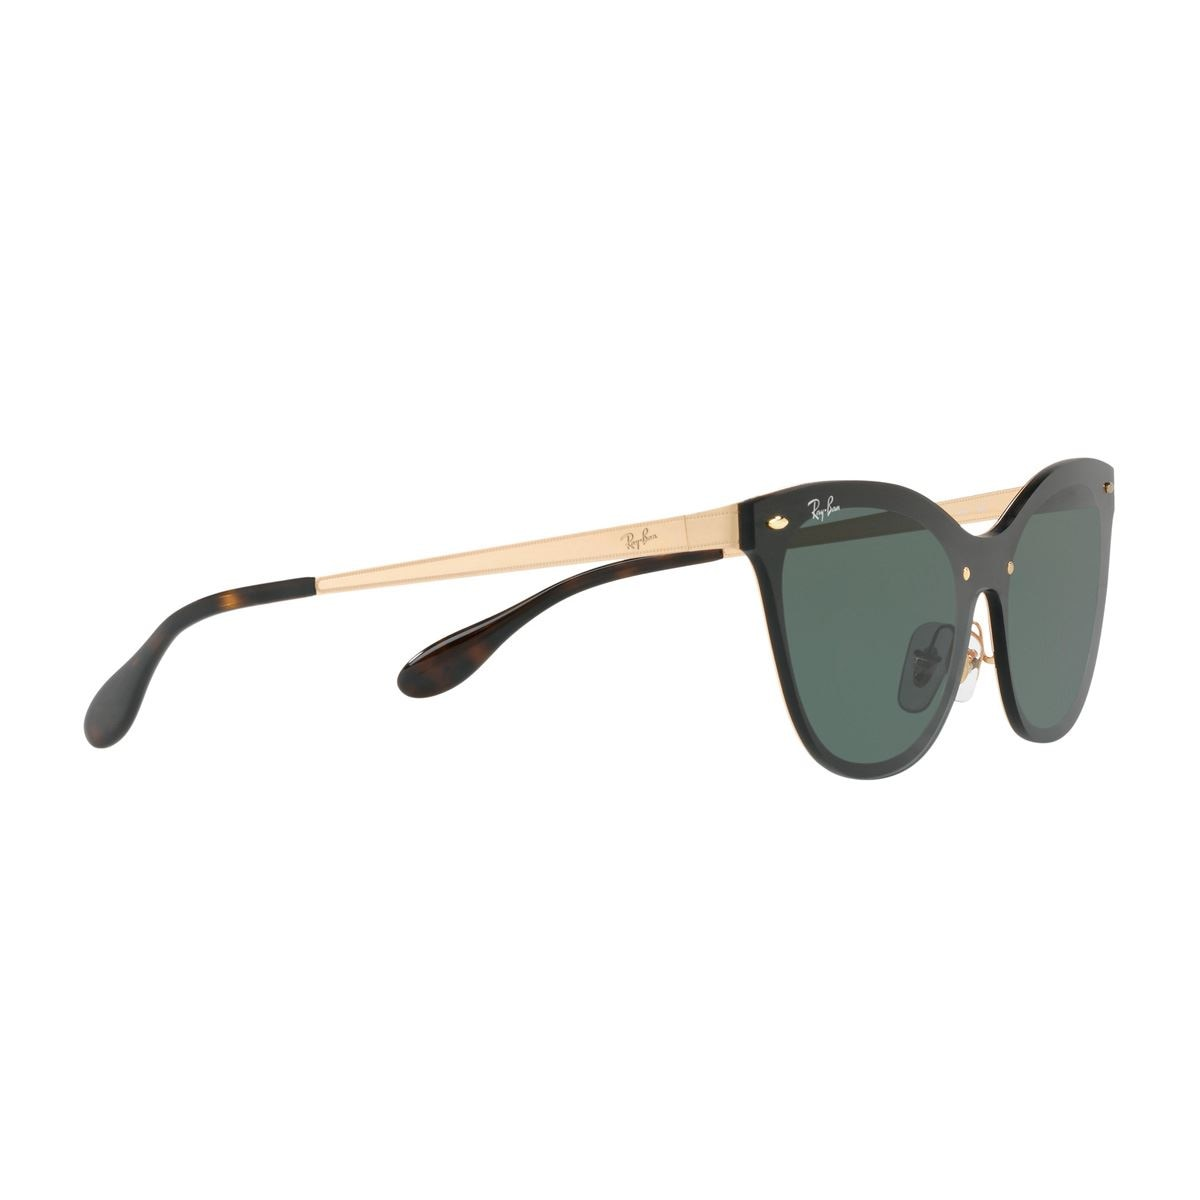 Solar ray-ban 0rb3580n 043/7143 m  - Sanborns